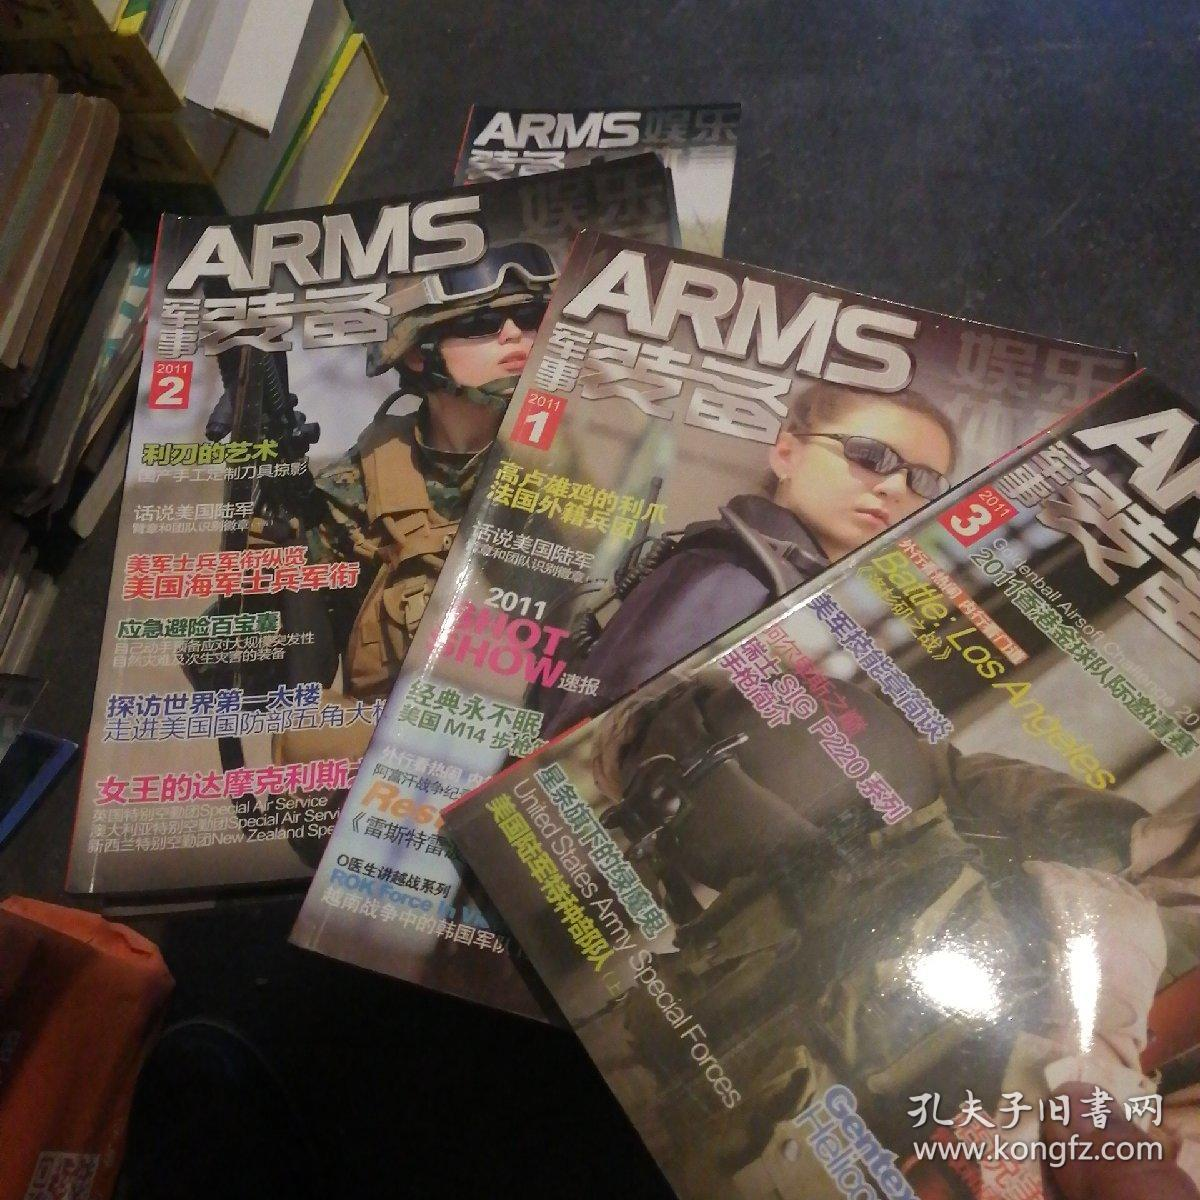 arms装备2011第1:2:3期